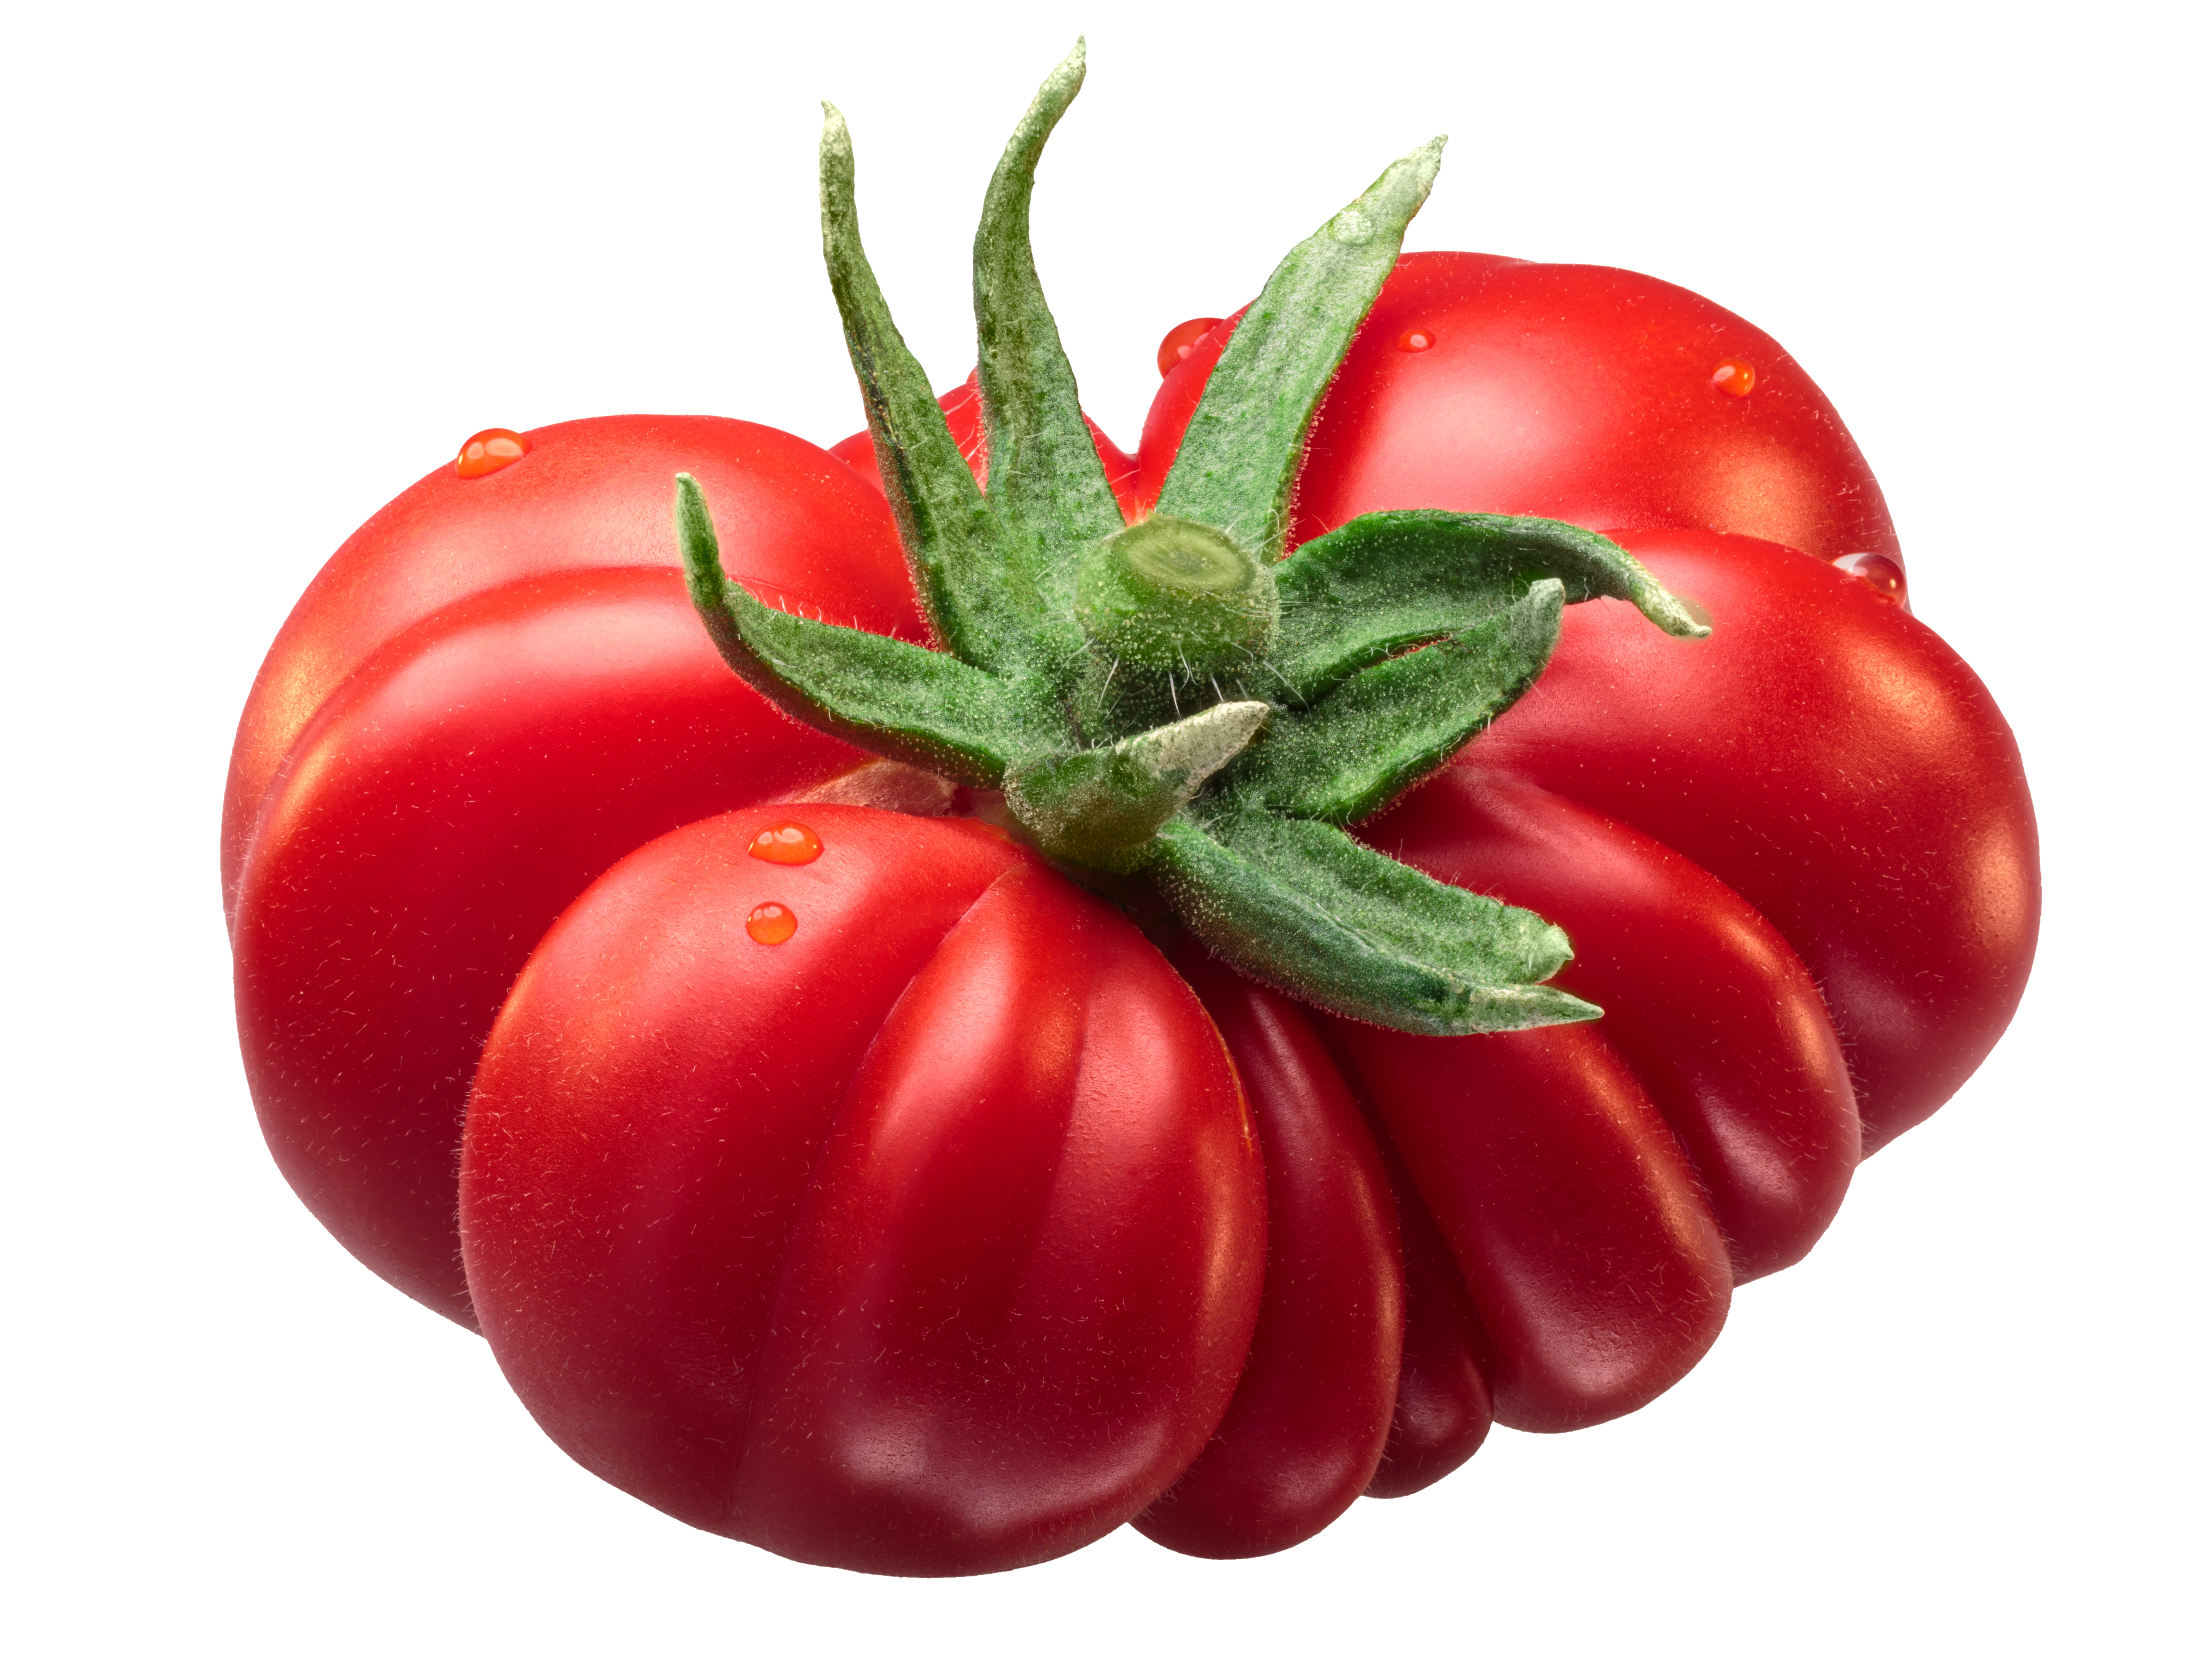 Picture of a tomato. Even a tomato can inspire mindful creative writing.